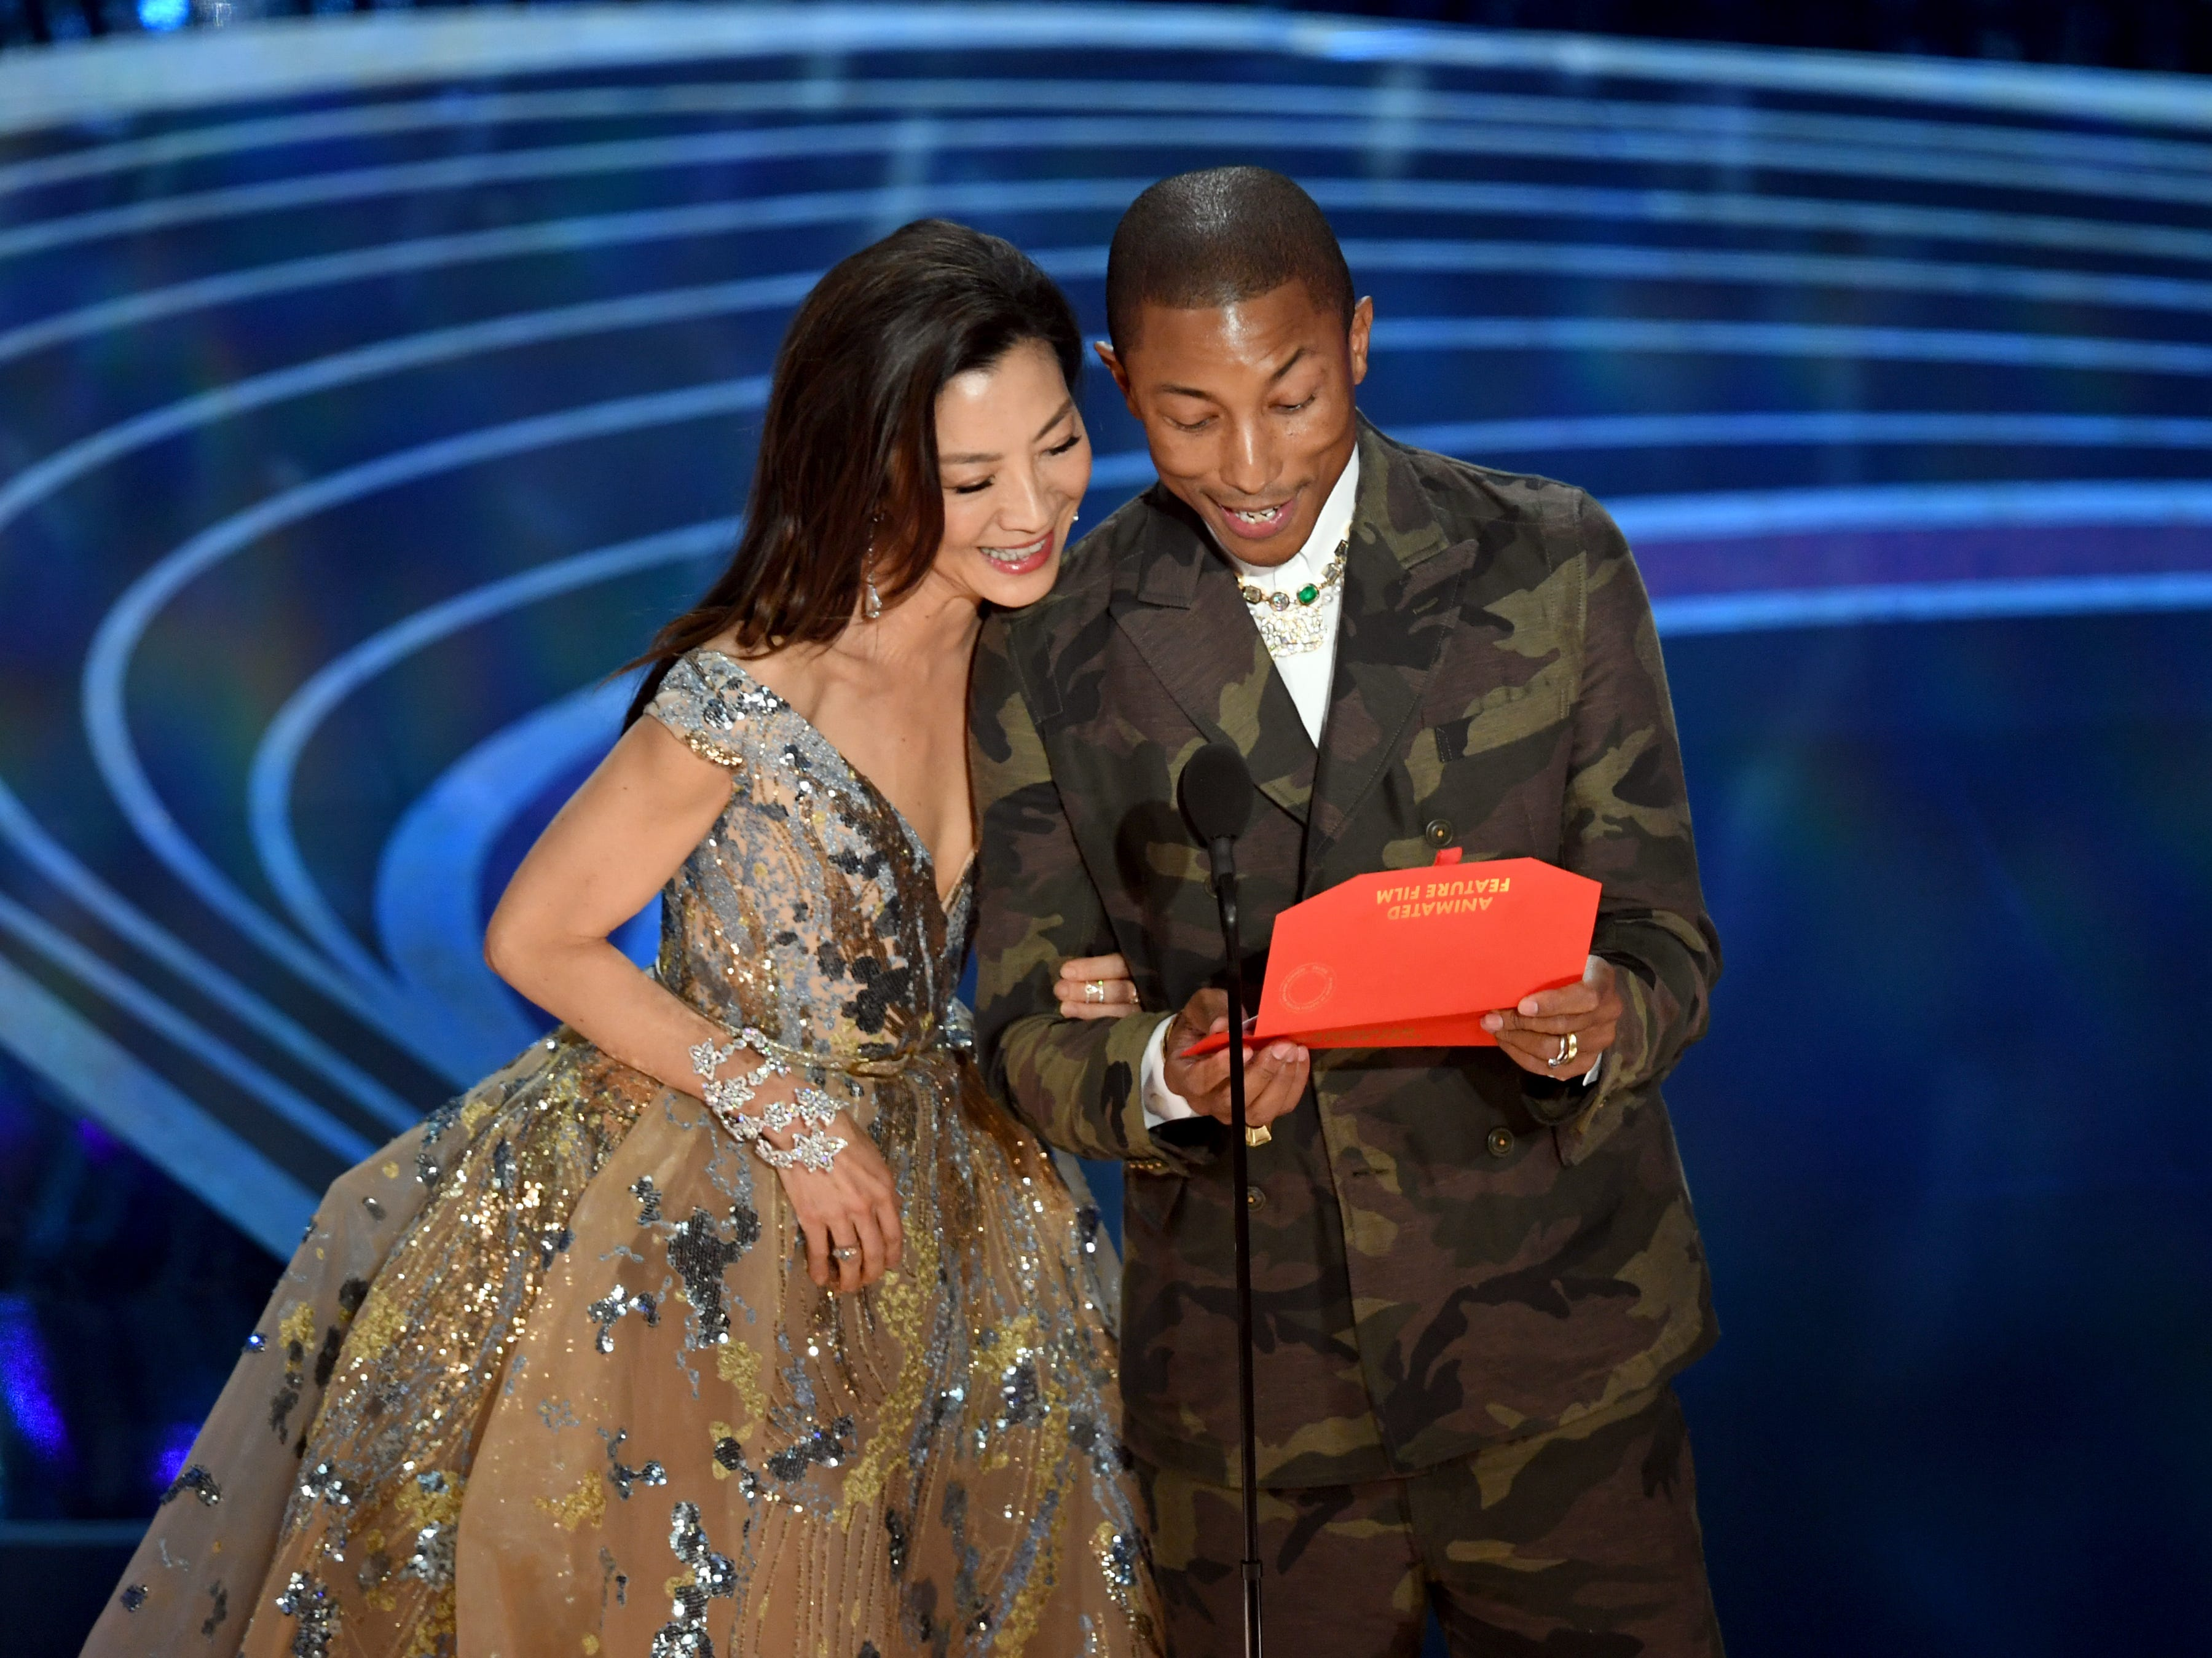 Michelle Yeoh and Pharrell Williams speak onstage during the 91st Annual Academy Awards.